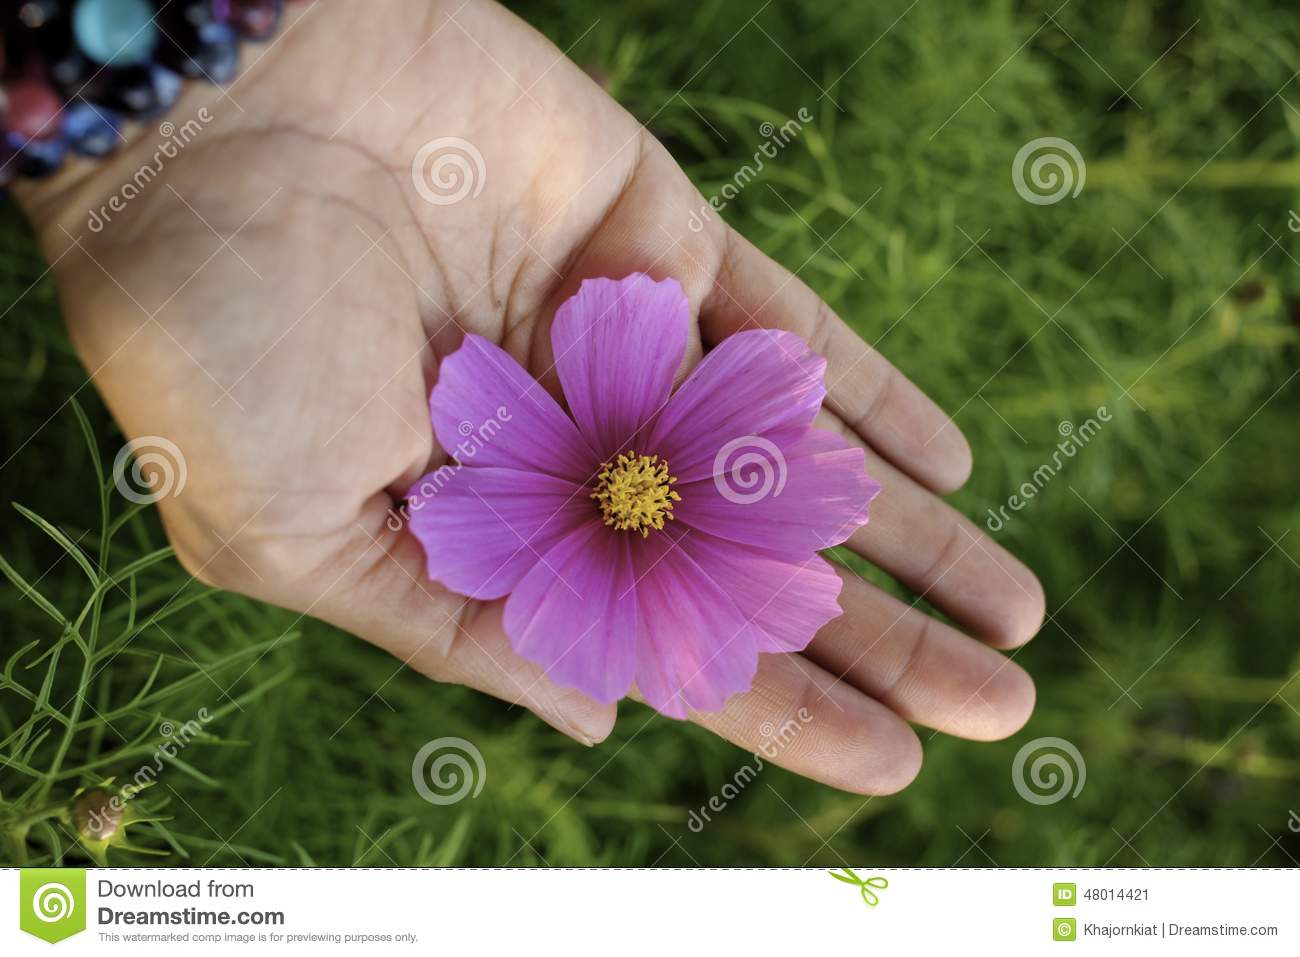 Pink cosmos flower on hand stock image image of bipinnatus 48014421 pink cosmos flower on hand izmirmasajfo